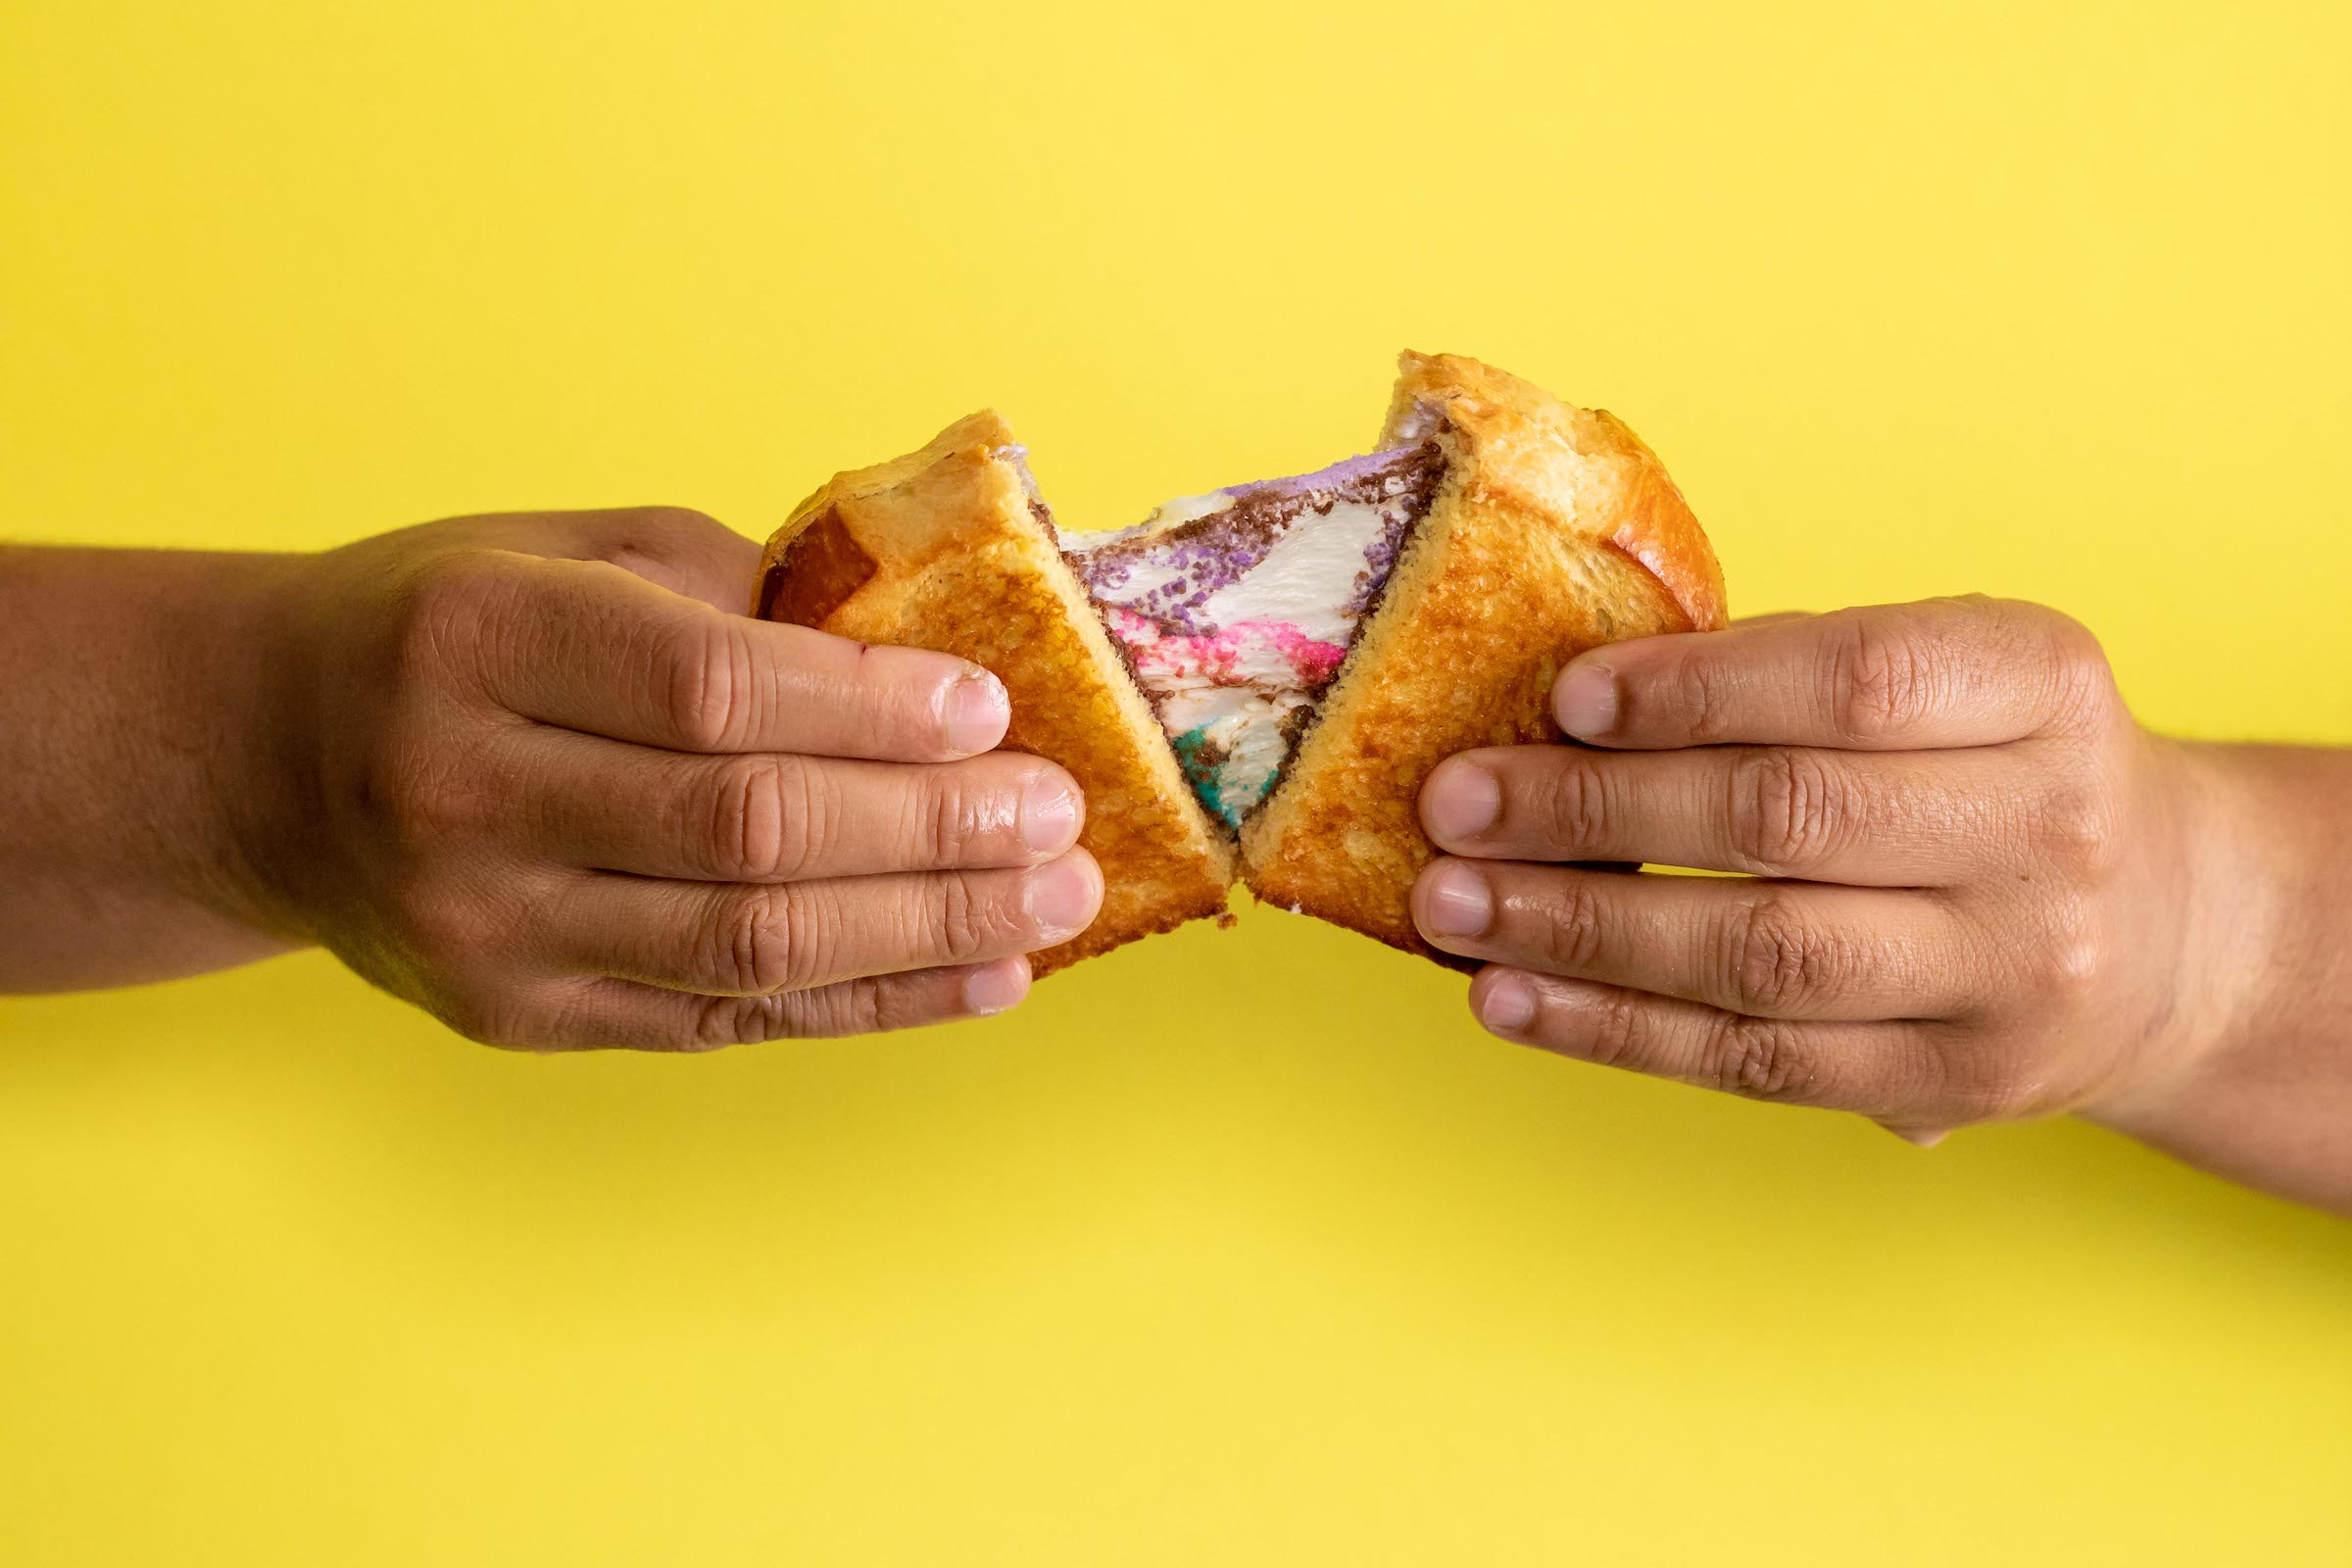 5D4A0035 - 20190328 - Peep Grilled Cheese - HIGH RES